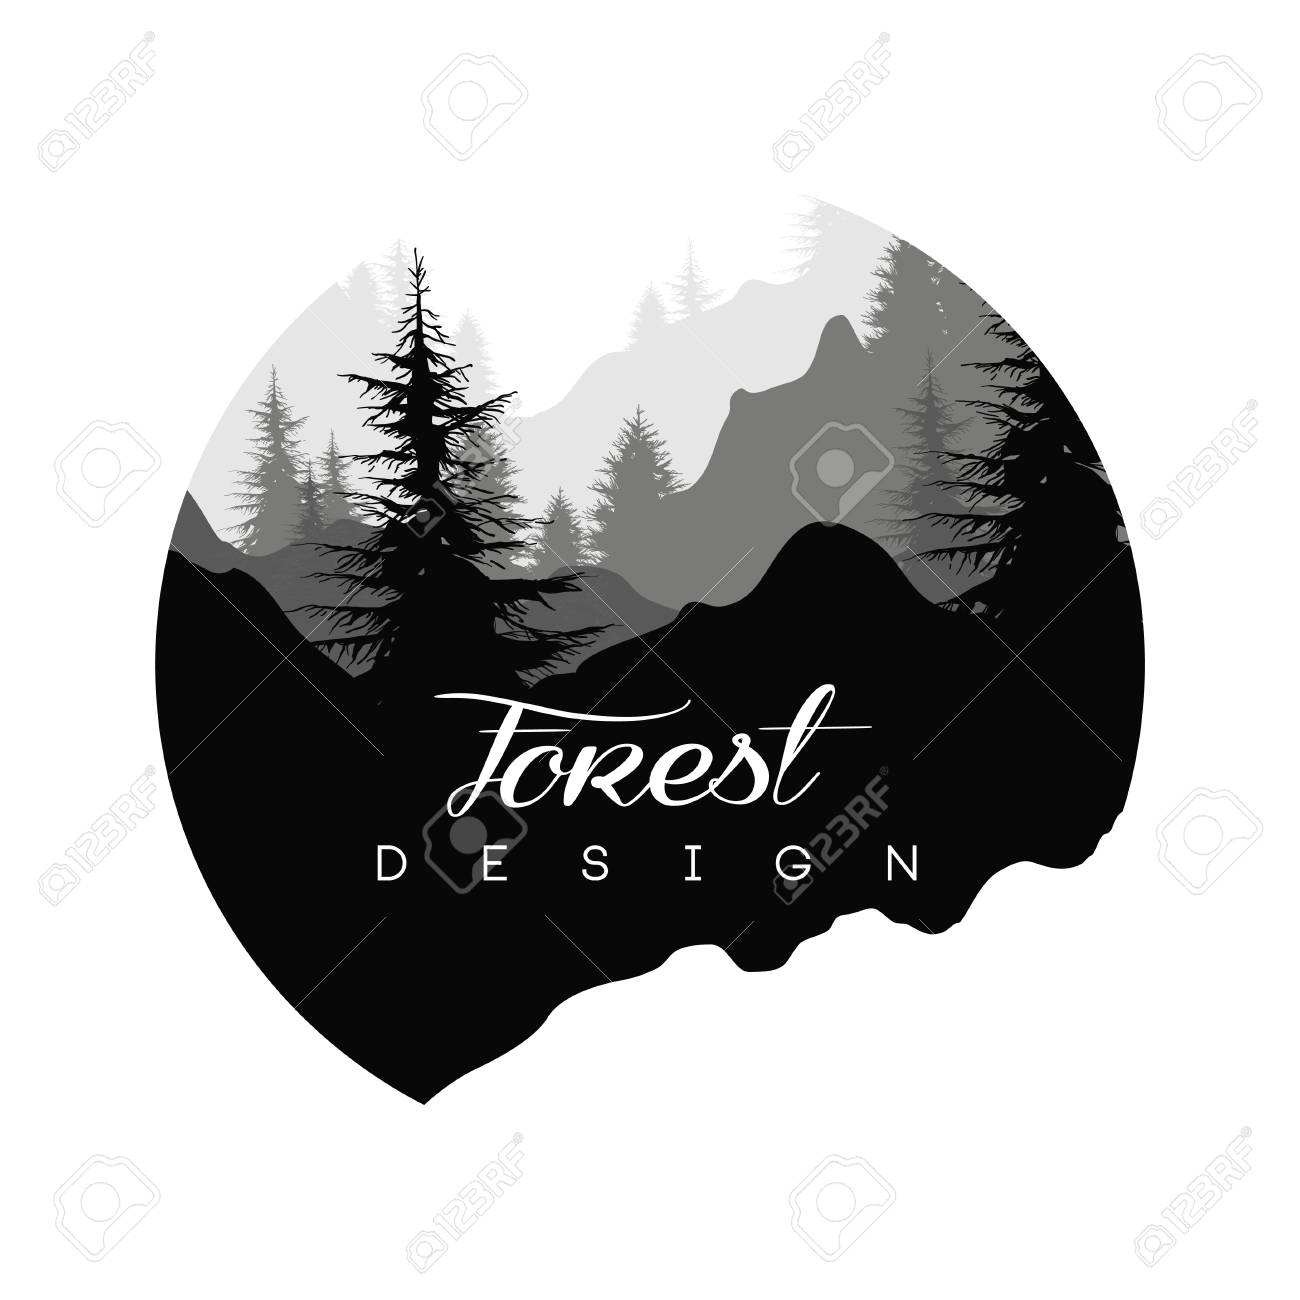 Forest logo design, nature landscape with silhouettes of trees and mountains, natural scene icon in geometric round shaped design, vector illustration in black and white colors - 96059619